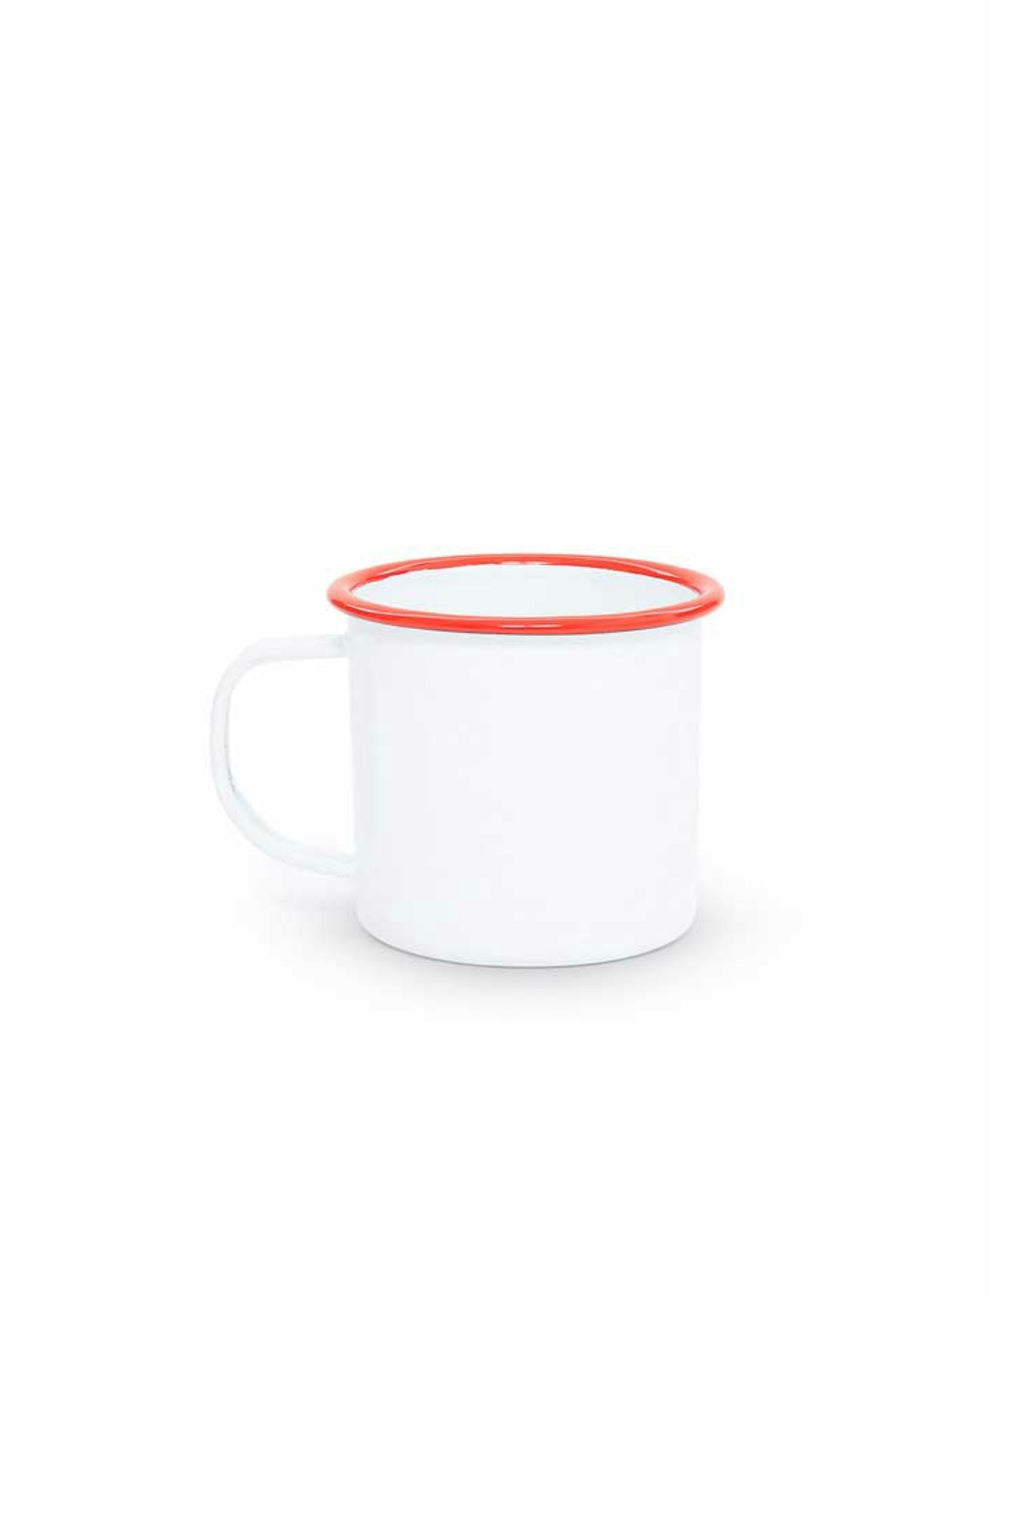 Crow Canyon Home Mug 12oz in Red